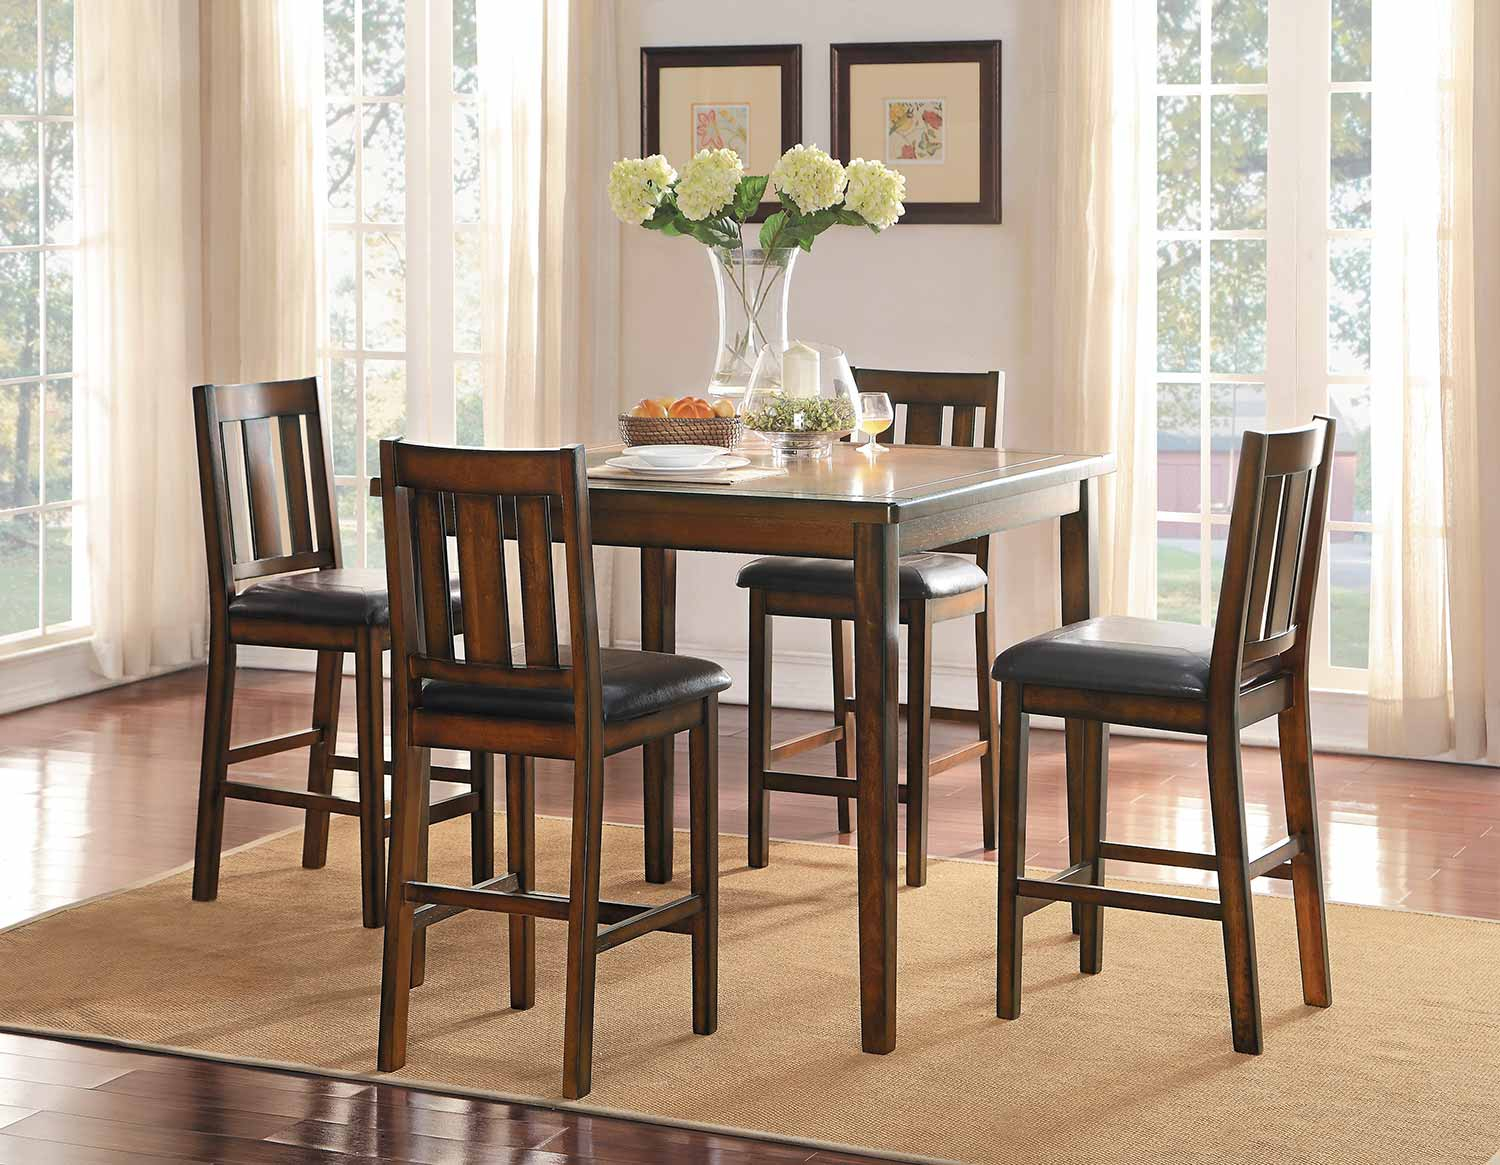 Homelegance Delmar 5 Piece Pack Counter Height Dining Set – Burnish Finish With Most Up To Date Delmar 5 Piece Dining Sets (View 4 of 20)